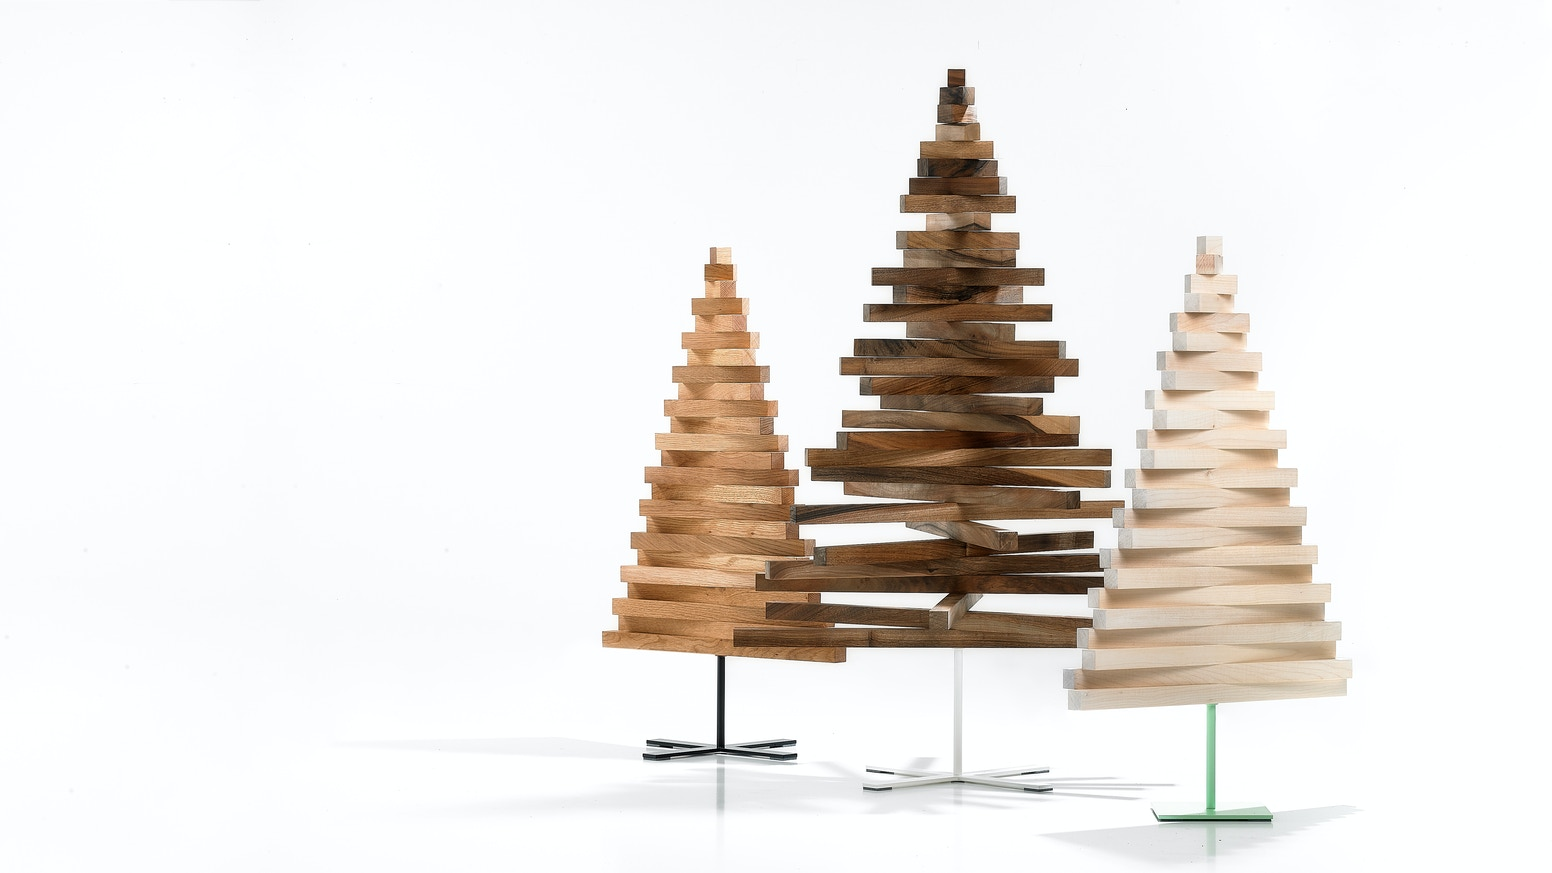 A sustainable, ecological, child & pet friendly designer tree made of wood for the holidays that packs up efficiently for safe storage.